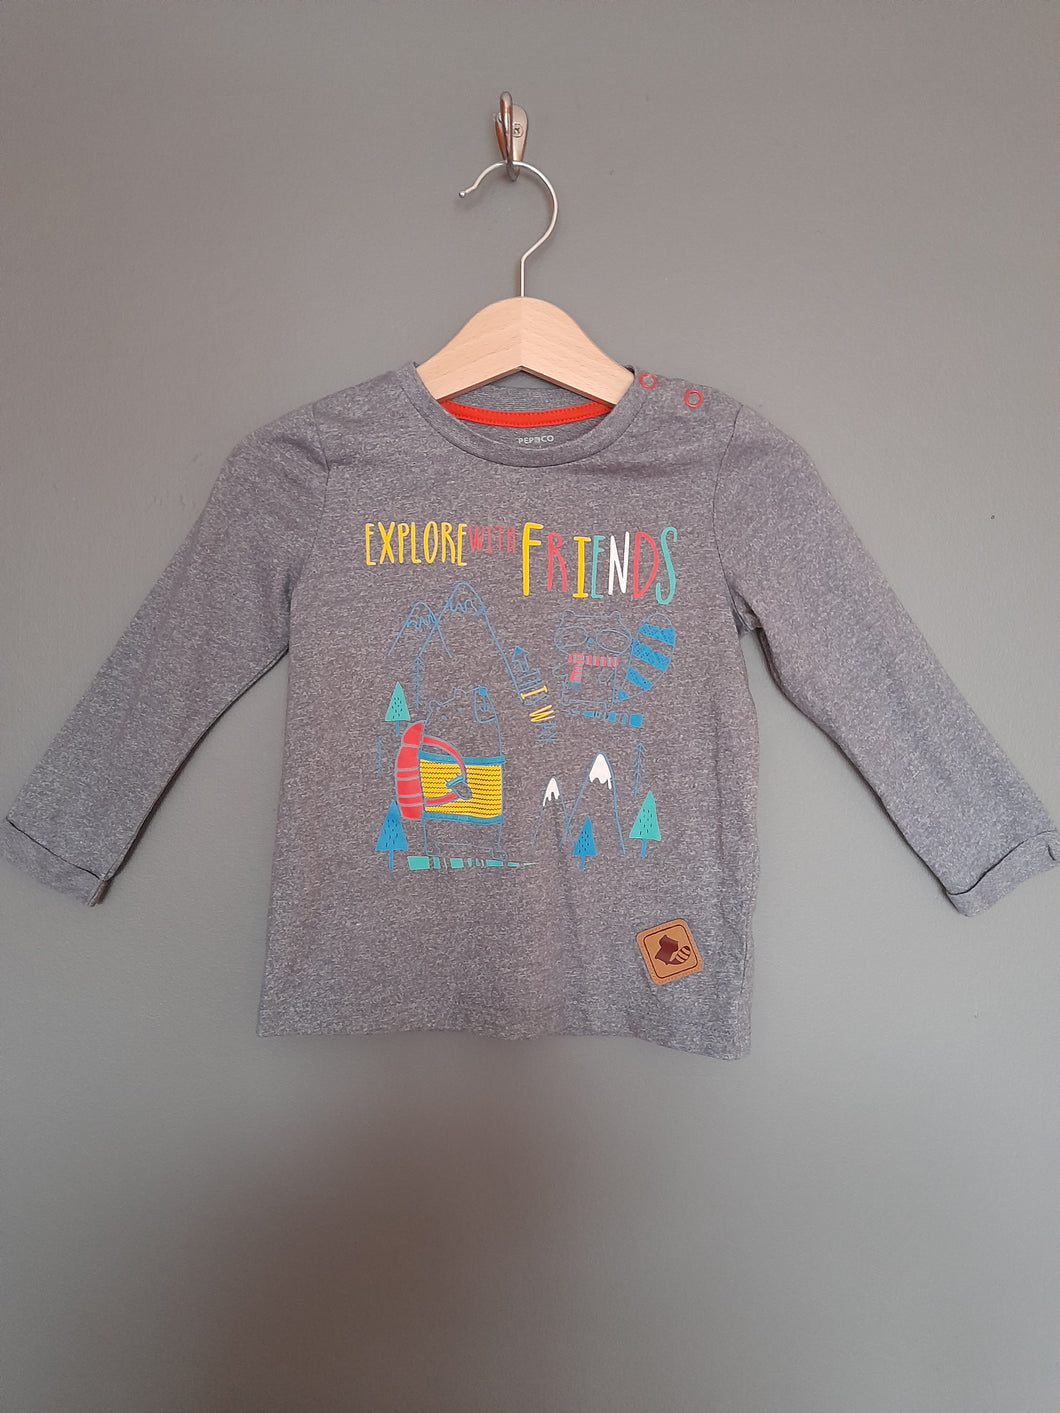 12-18 months Grey 'explore with friends' top - Pep & Co